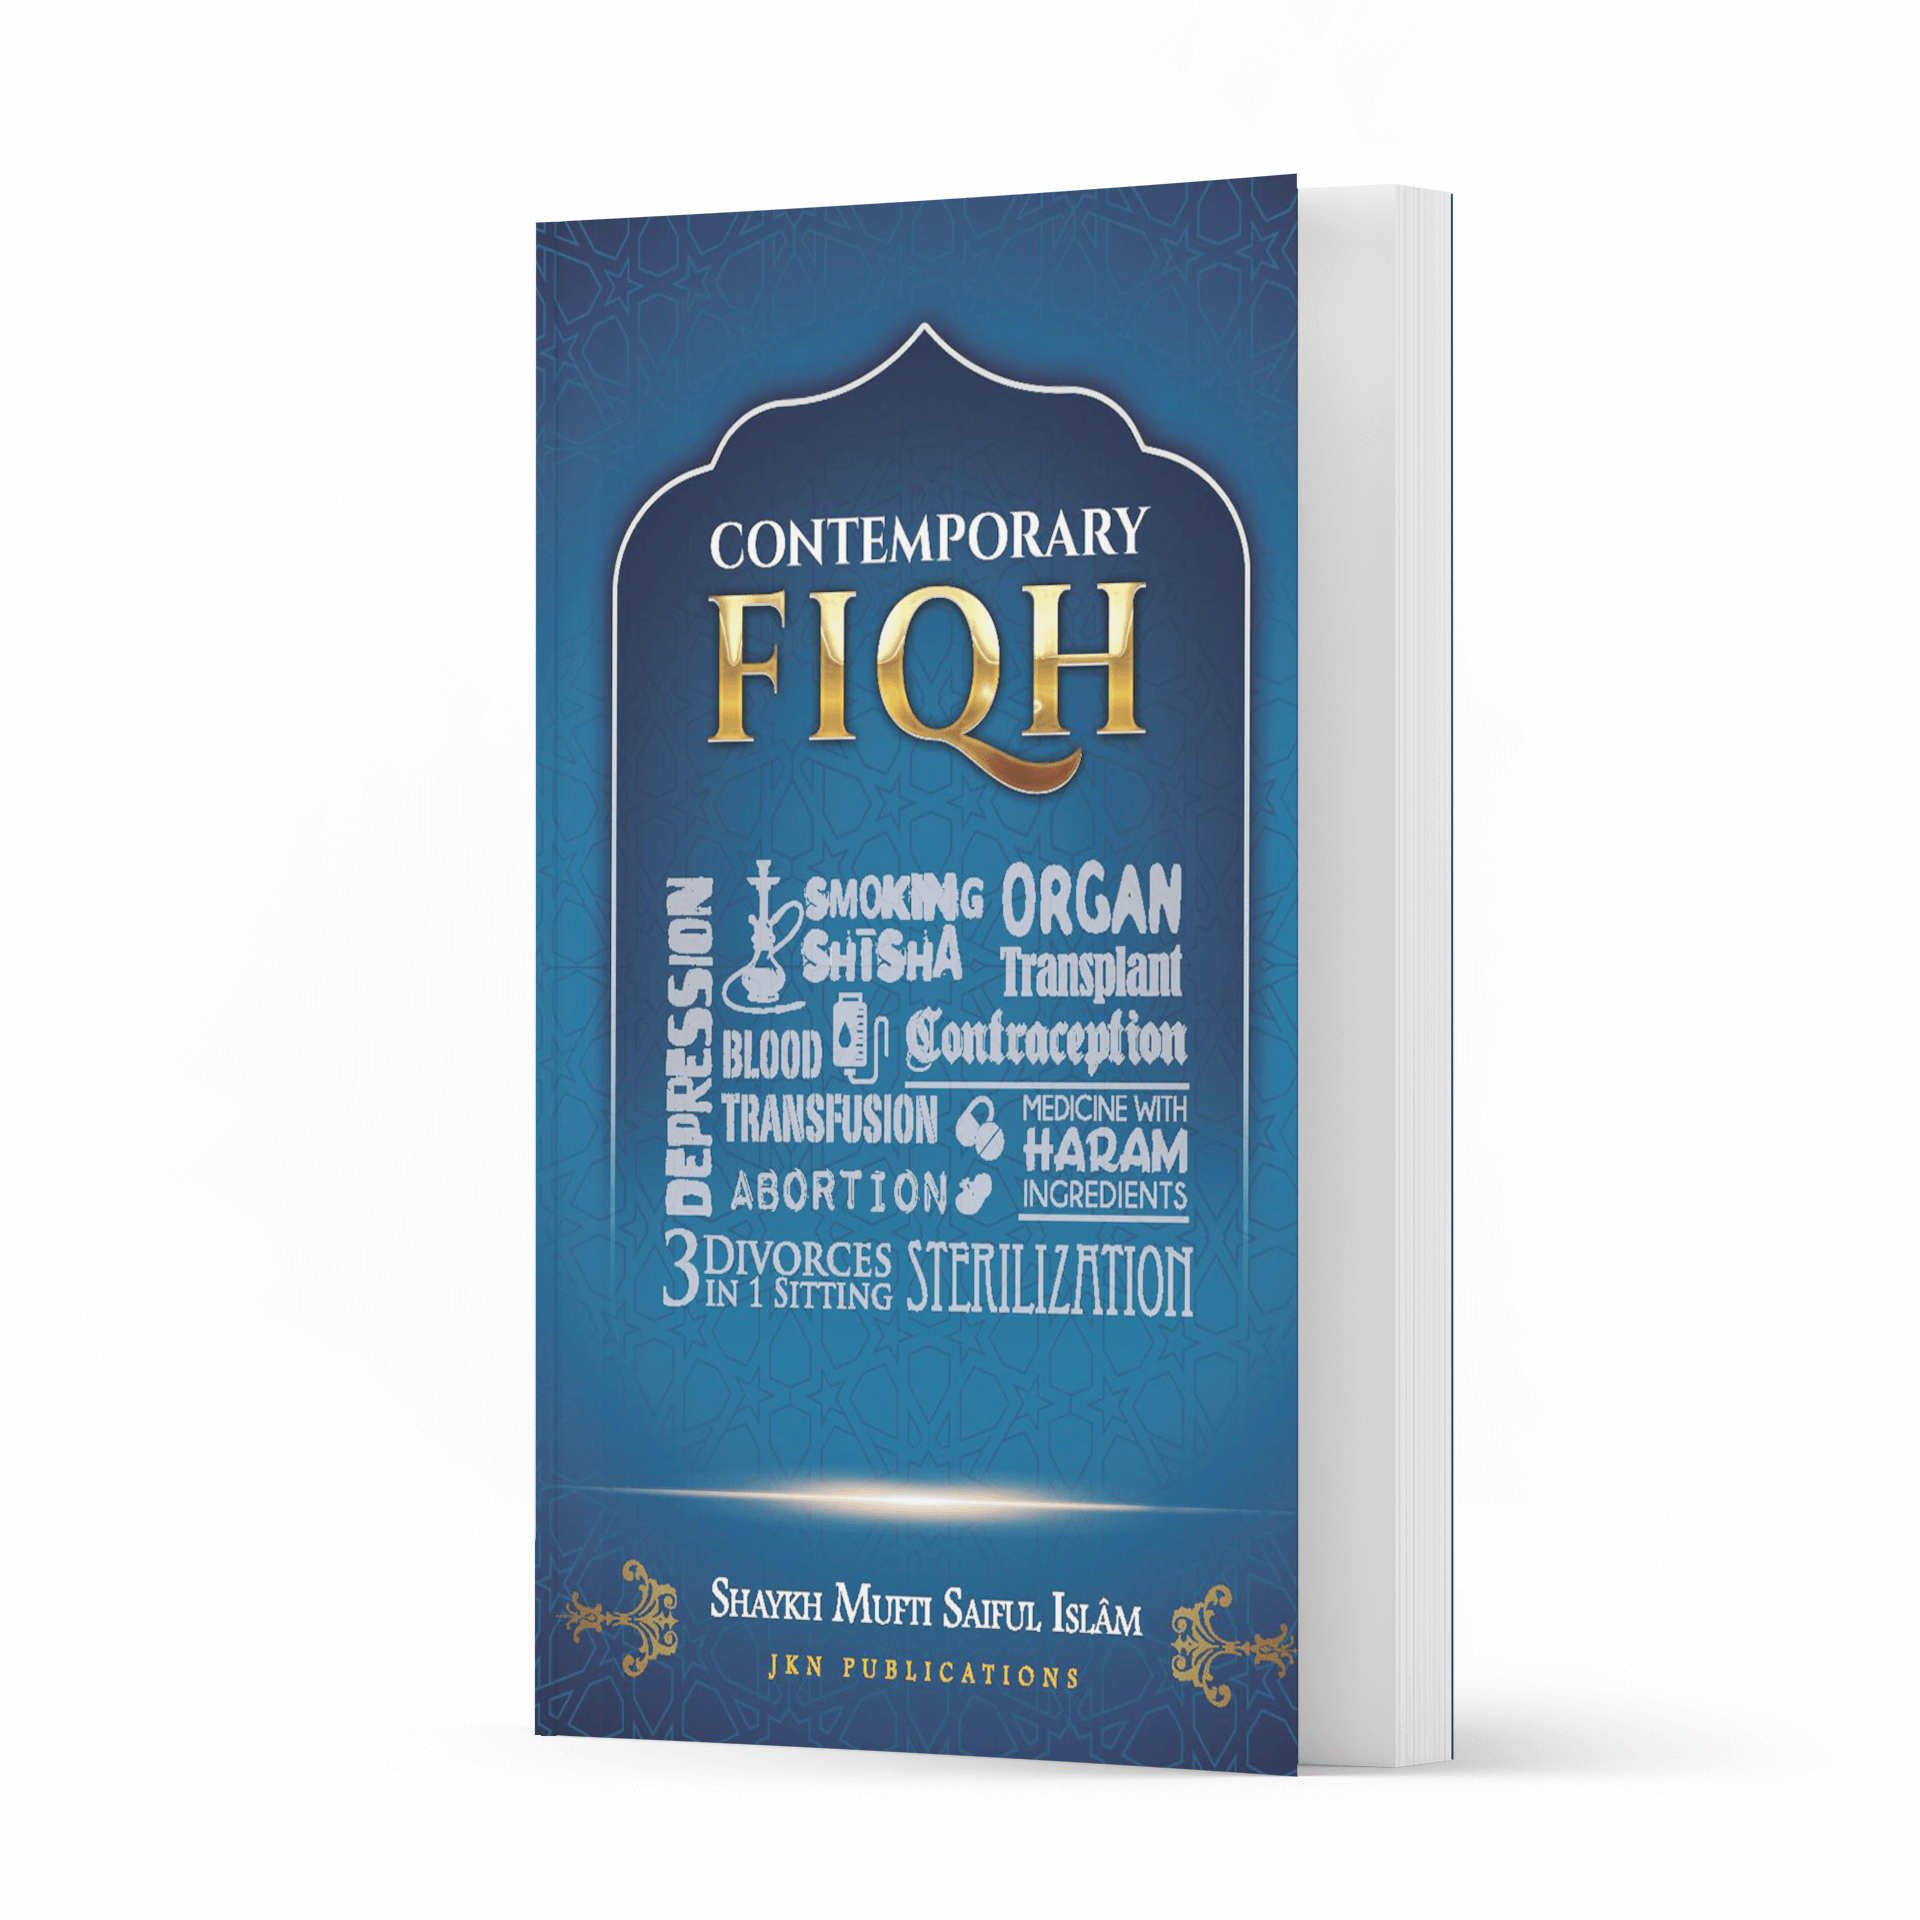 Contemporary Fiqh